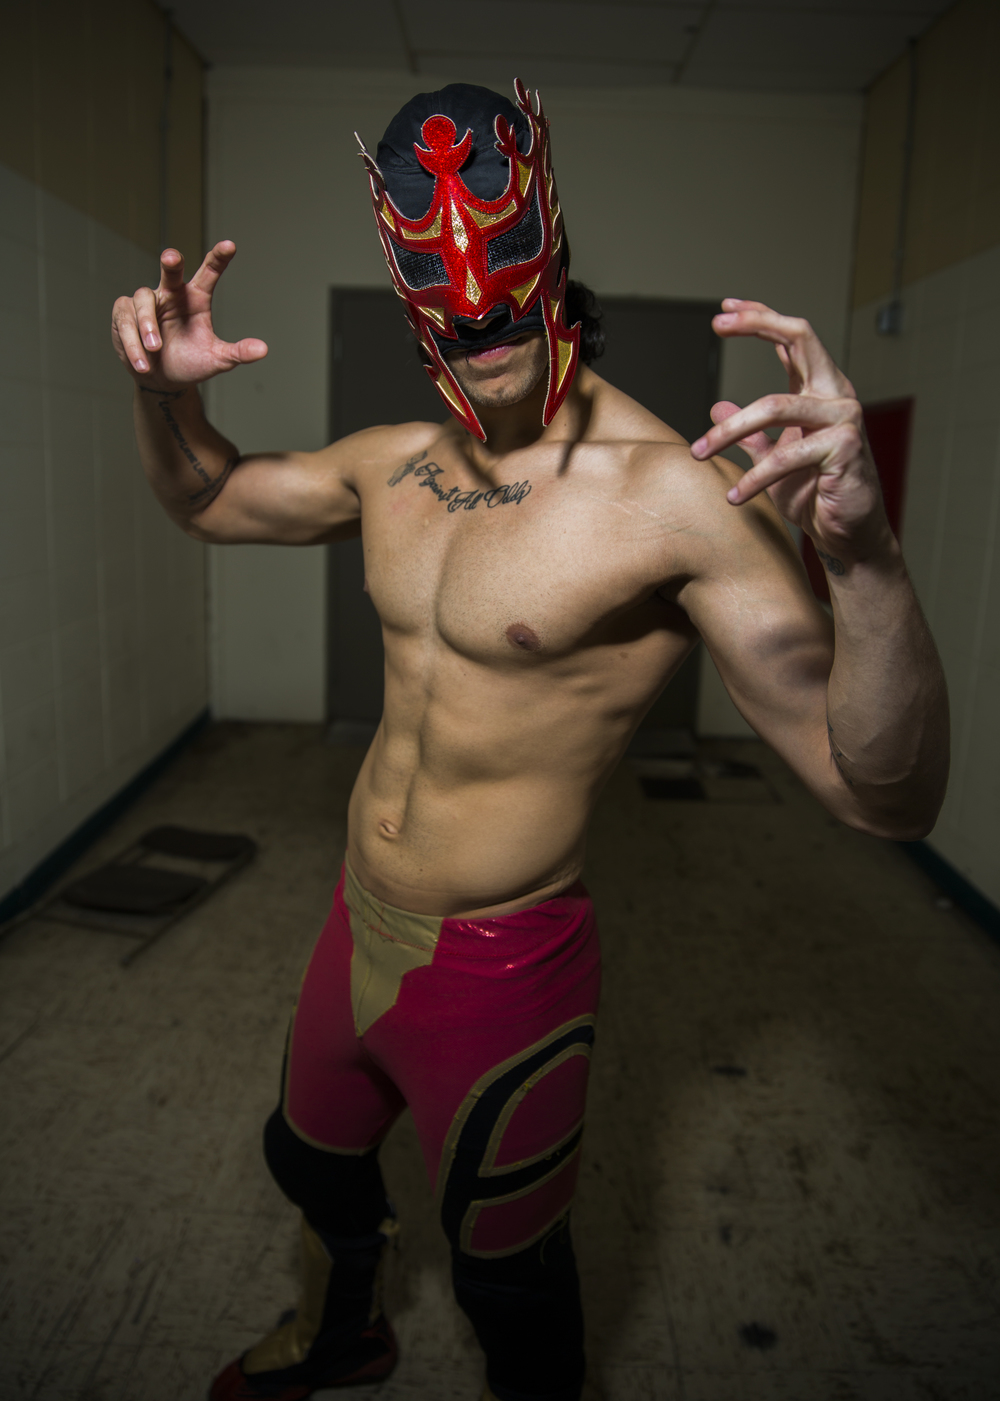 19-year-old Rey Furia of Lucha Libre Gali bypassed a traditional path, instead devoting himself to professional wrestling. He travels almost every weekend across the midwest as a freelance wrestler.